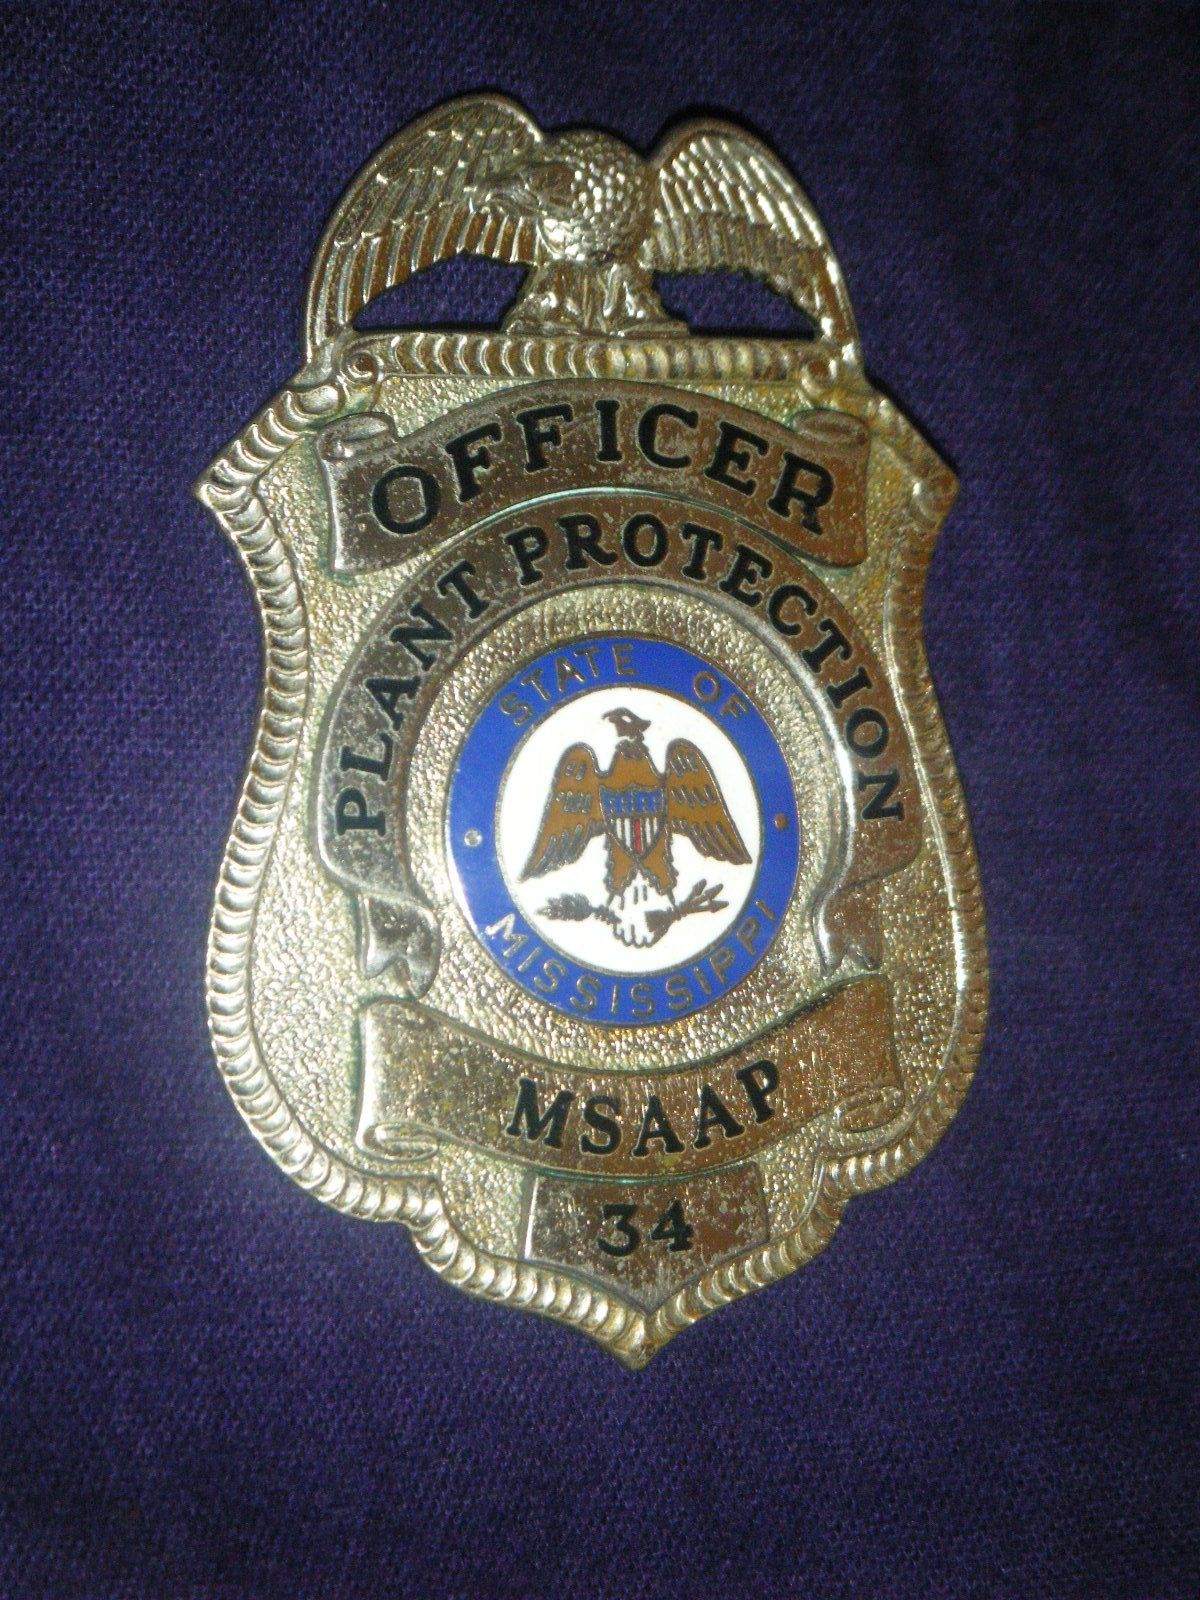 PLANT PROTECTION OFFICER, MSAAP (MISSISSIPPI ARMY AMMUNITION PLANT